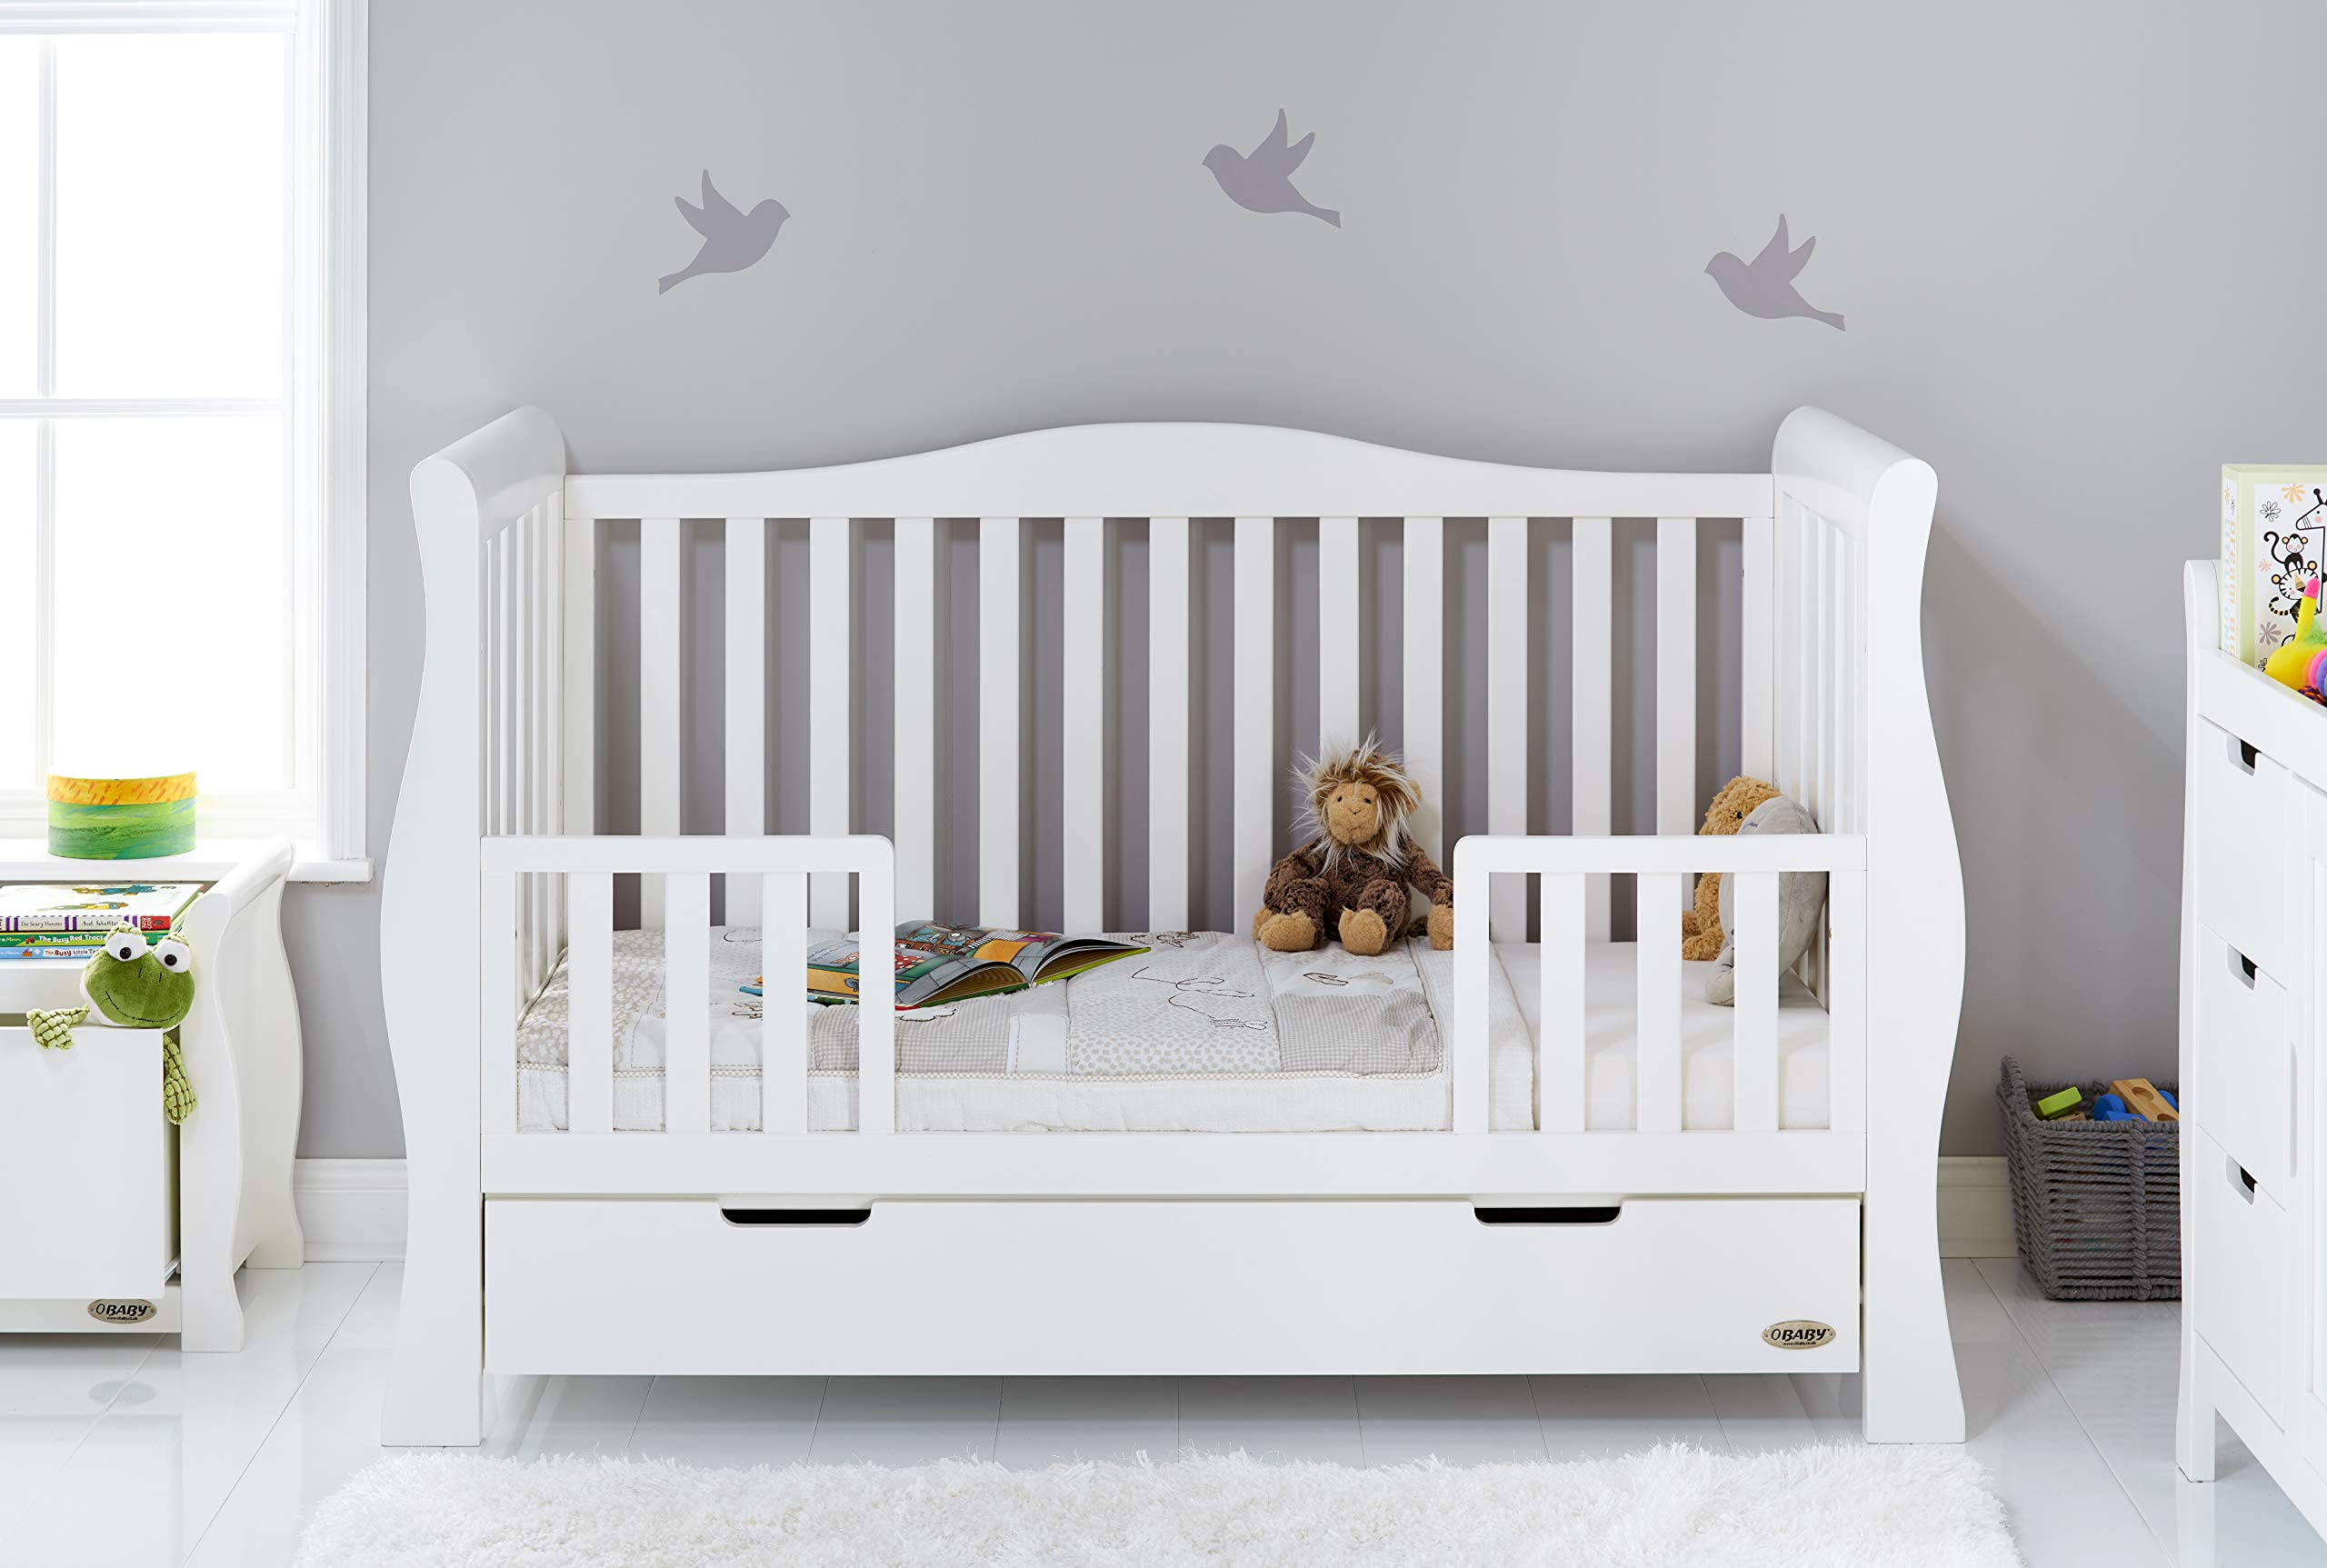 Obaby Stamford Sleigh Luxe Cot Bed - White Obaby Adjustable 3 position mattress height Bed ends split to transforms into toddler bed Includes matching under drawer for storage 2